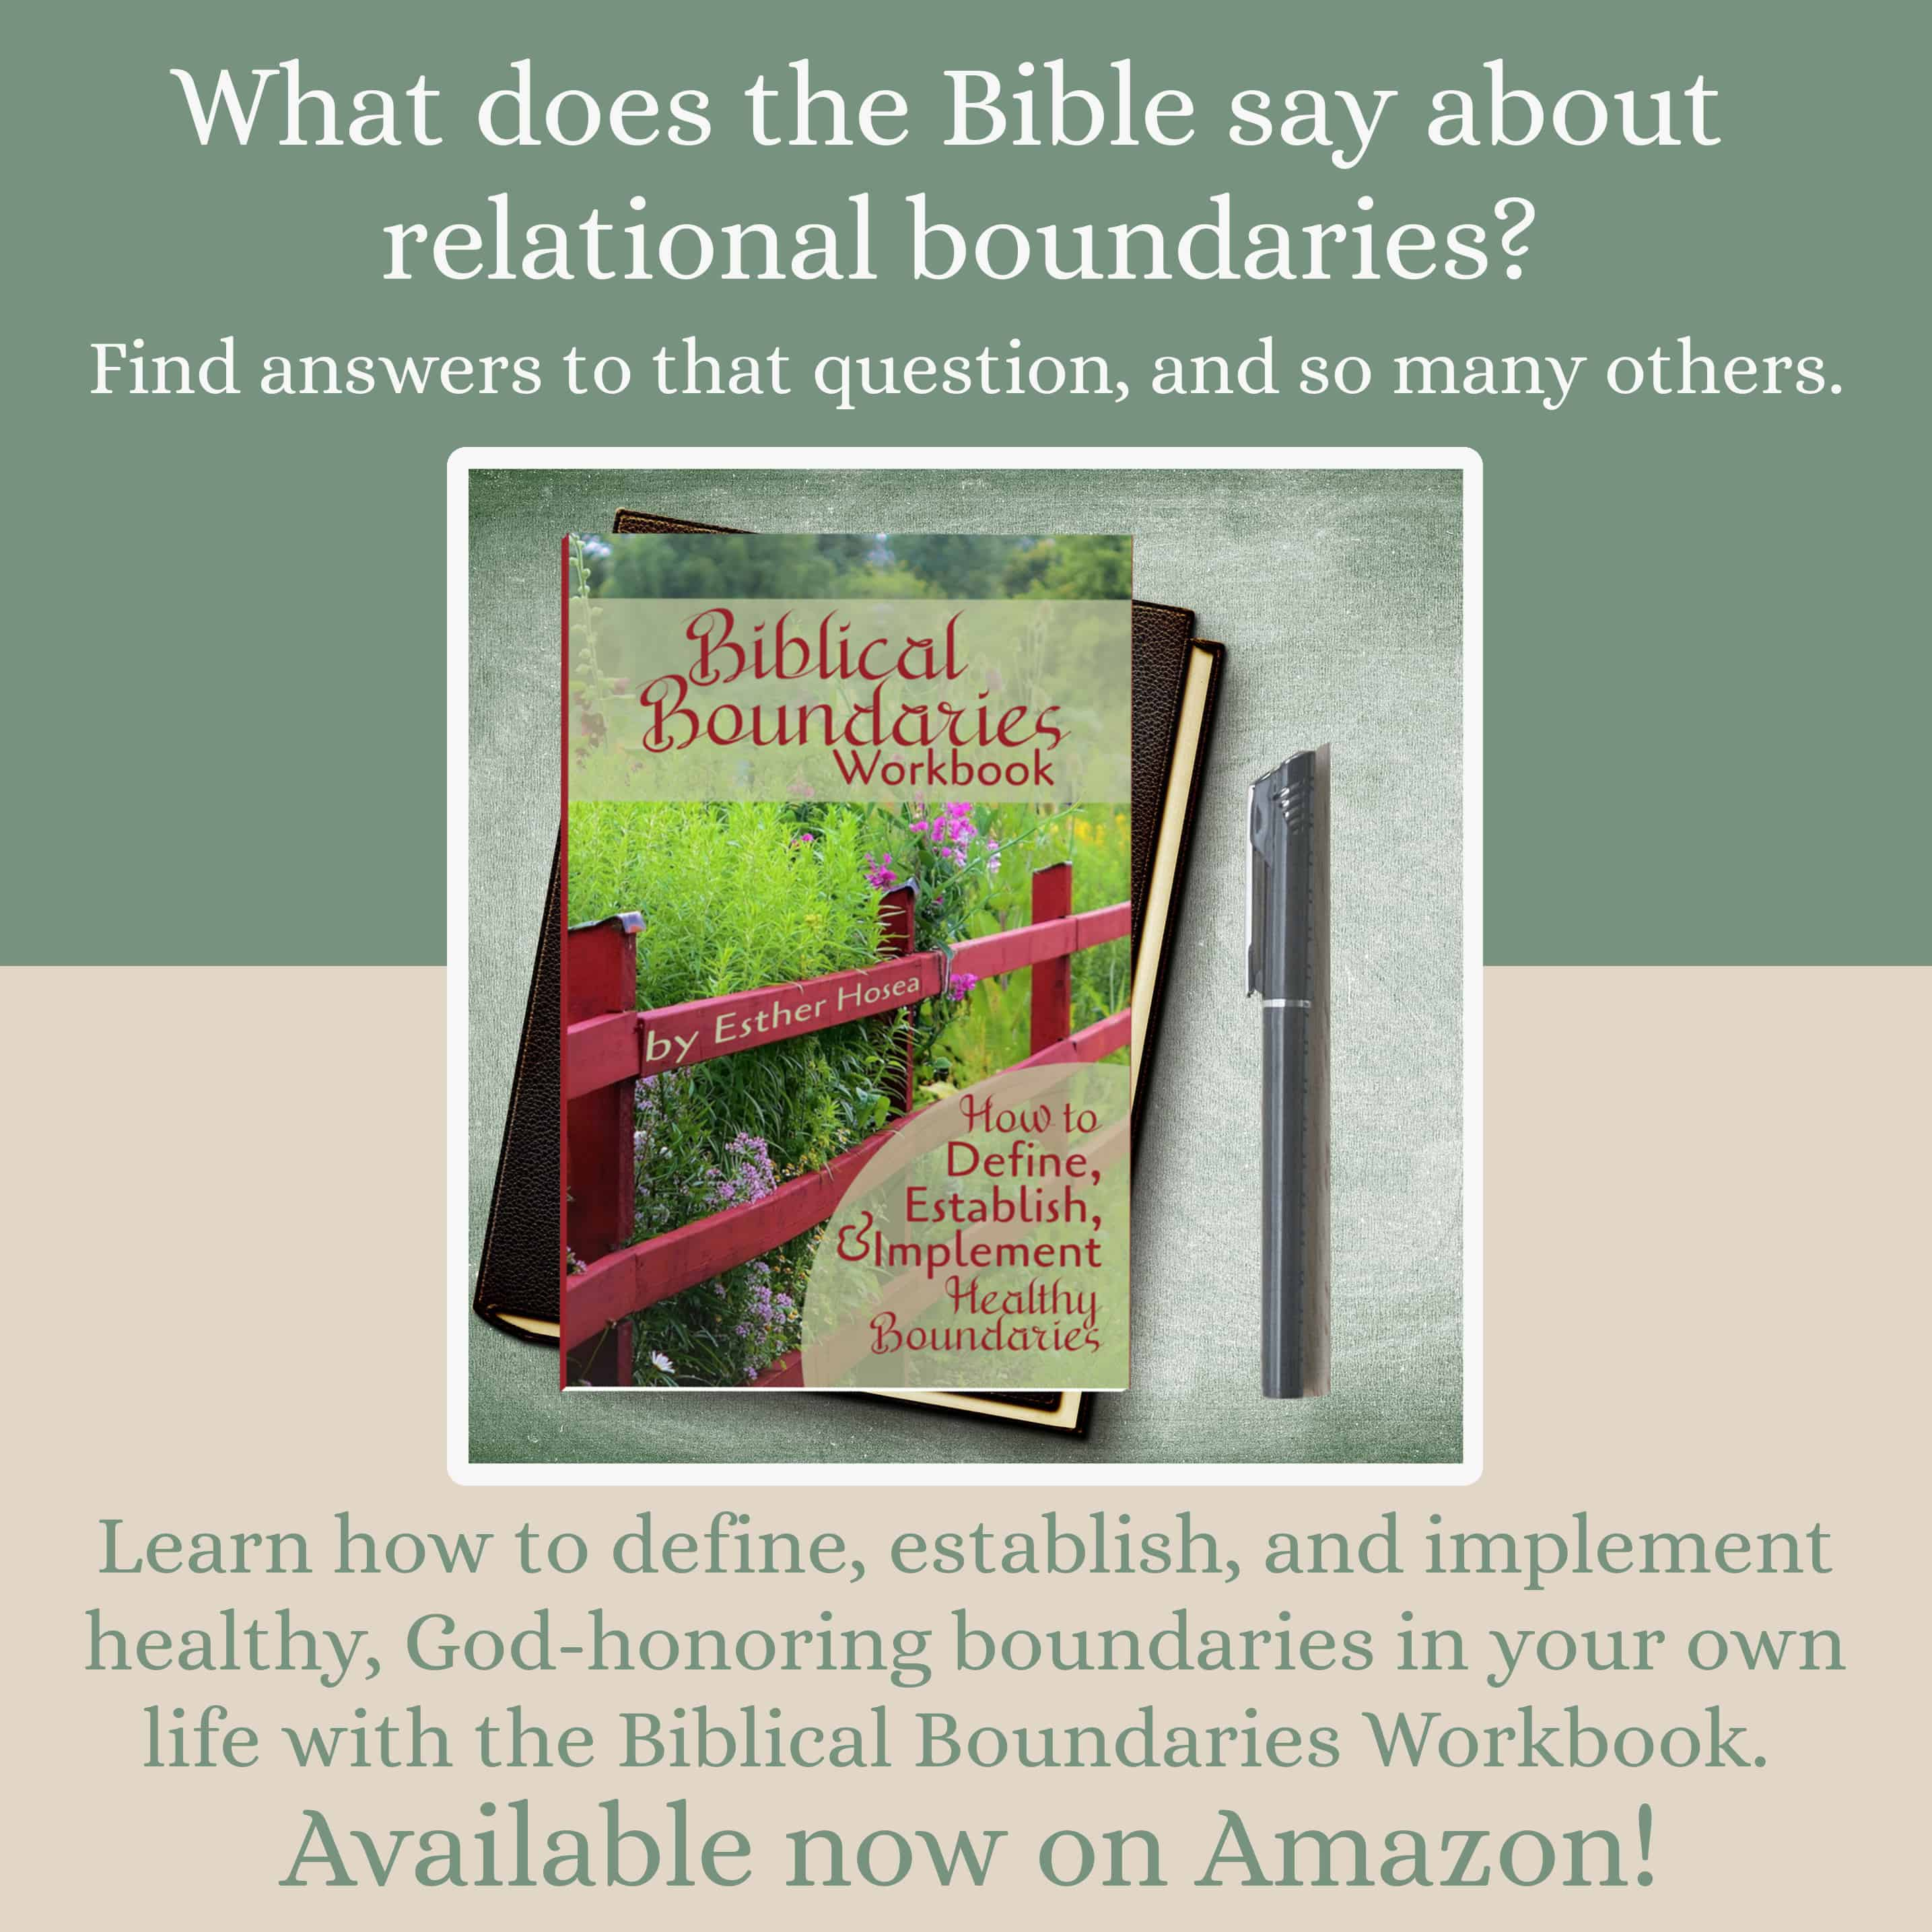 What does the Bible say about relational boundaries? Find answers to that question and many others. Learn how to define, establish, and implement healthy, God-honoring boundaries in your own life with the Biblical Boundaries Workbook. Available now on Amazon!